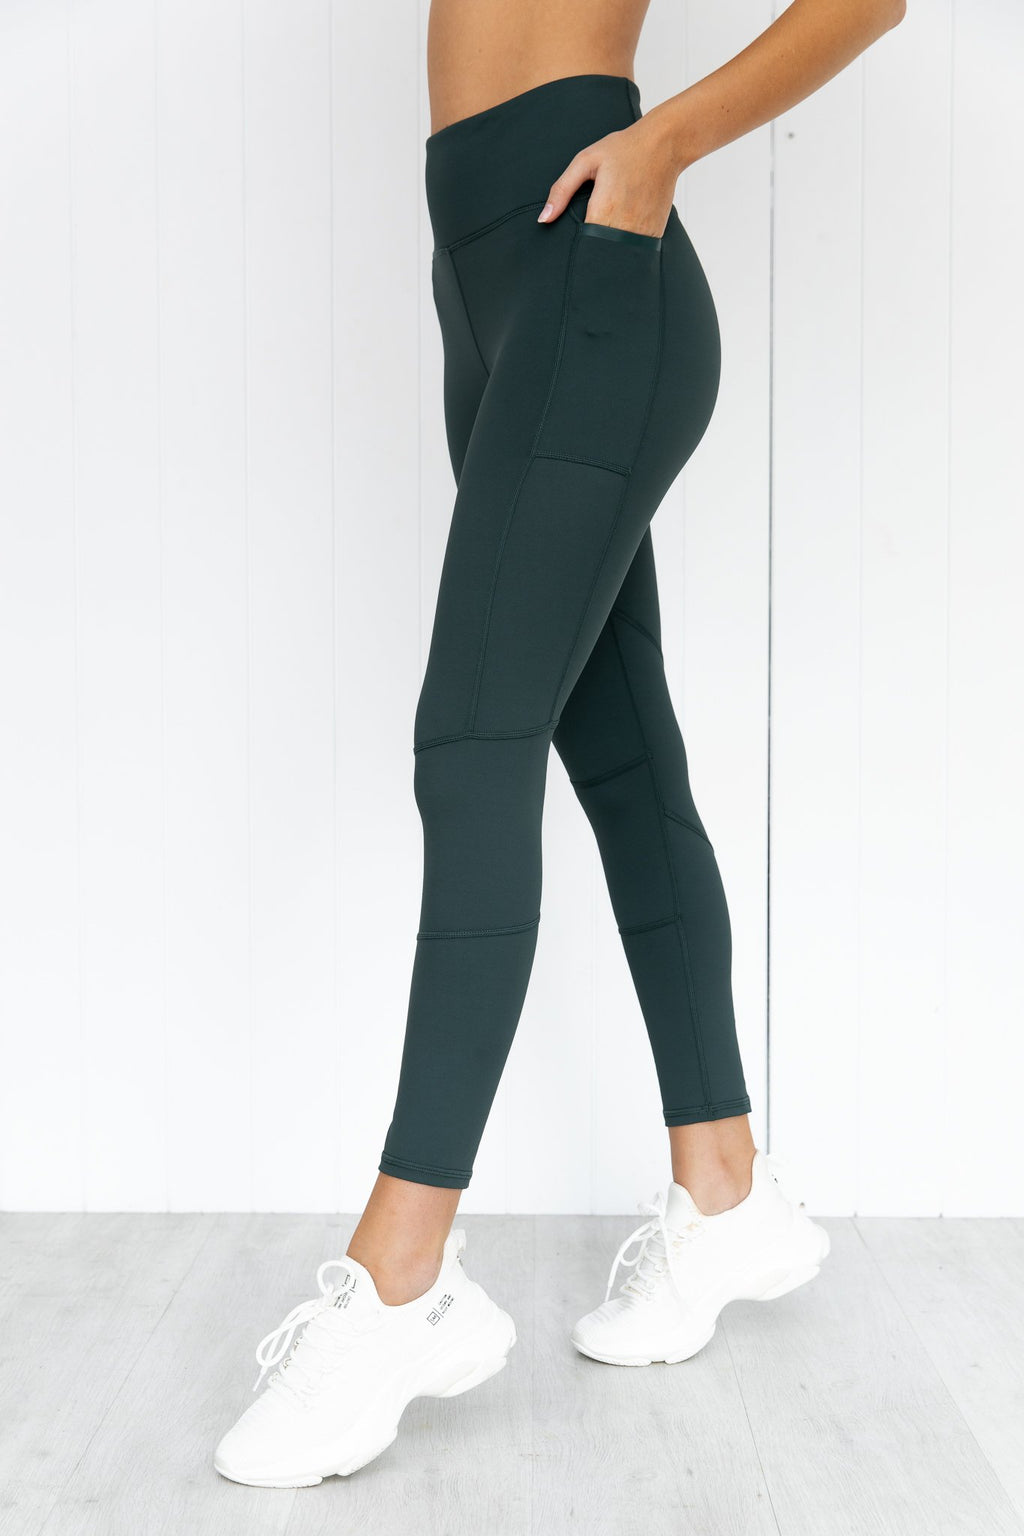 Juliet Leggings - Smoke Green